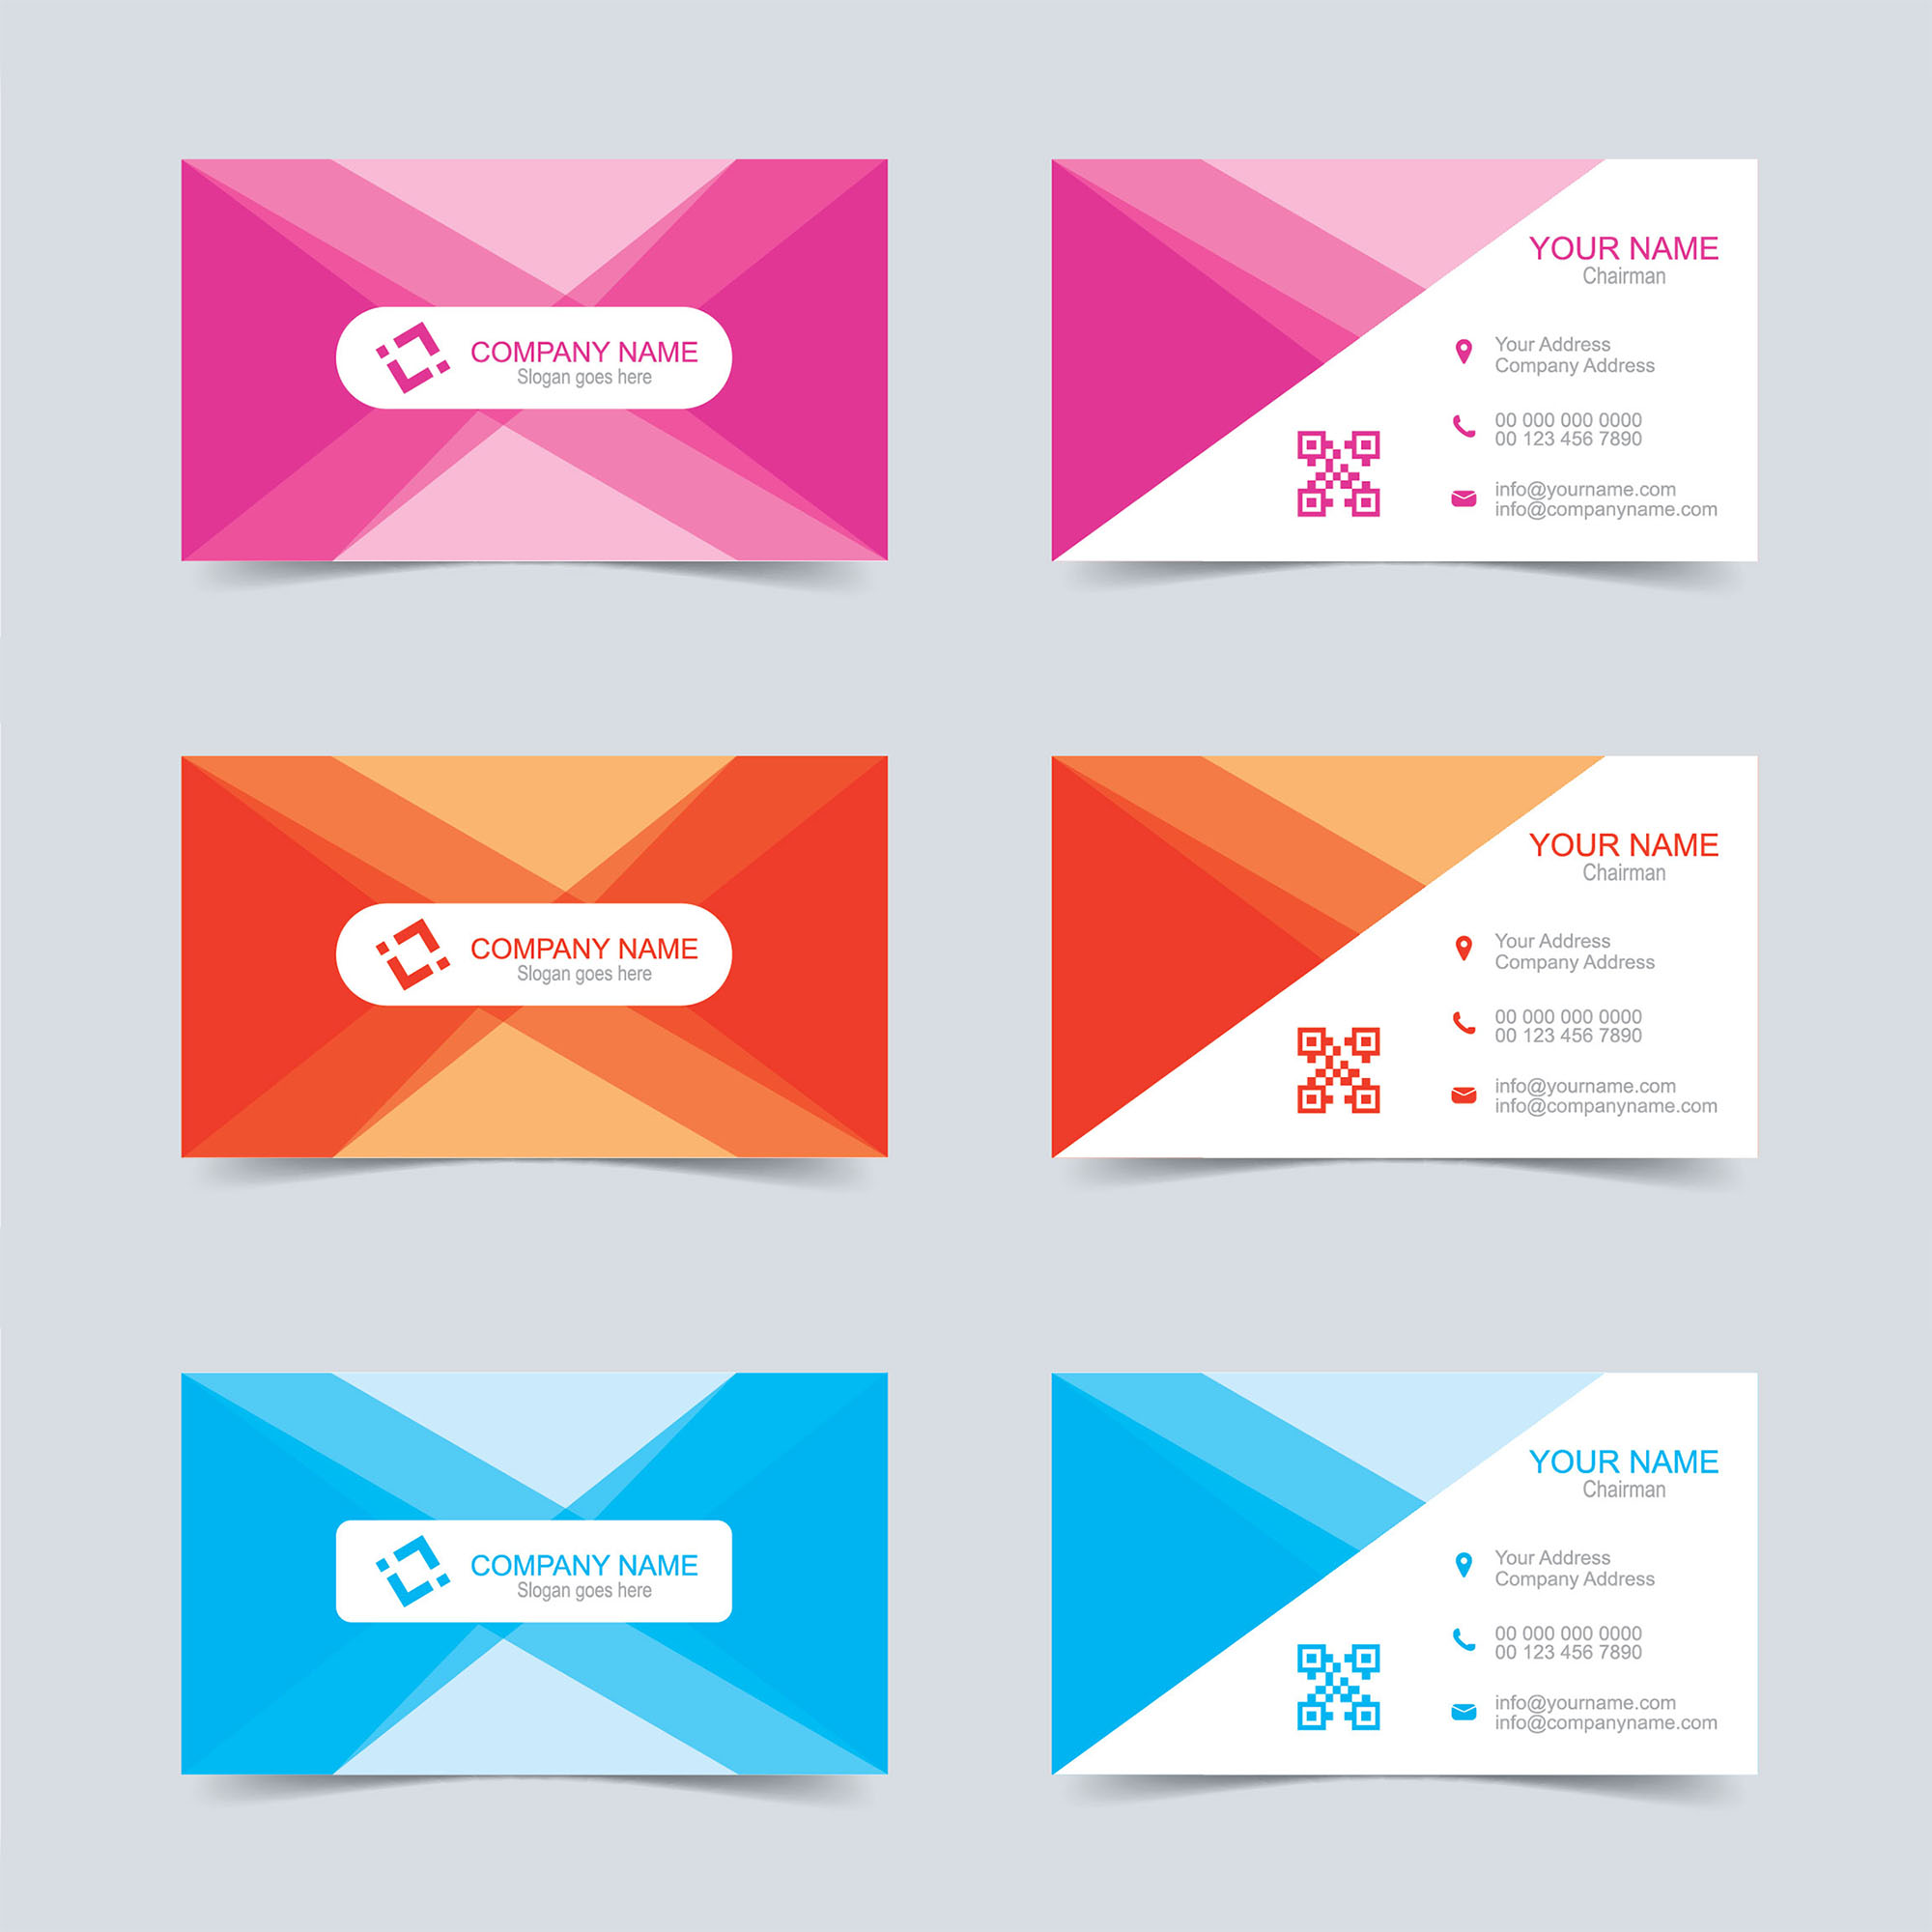 Business cards logo design free alternative clipart design vector business card template free download wisxi com rh wisxi com business cards design free business cards design free templates reheart Images